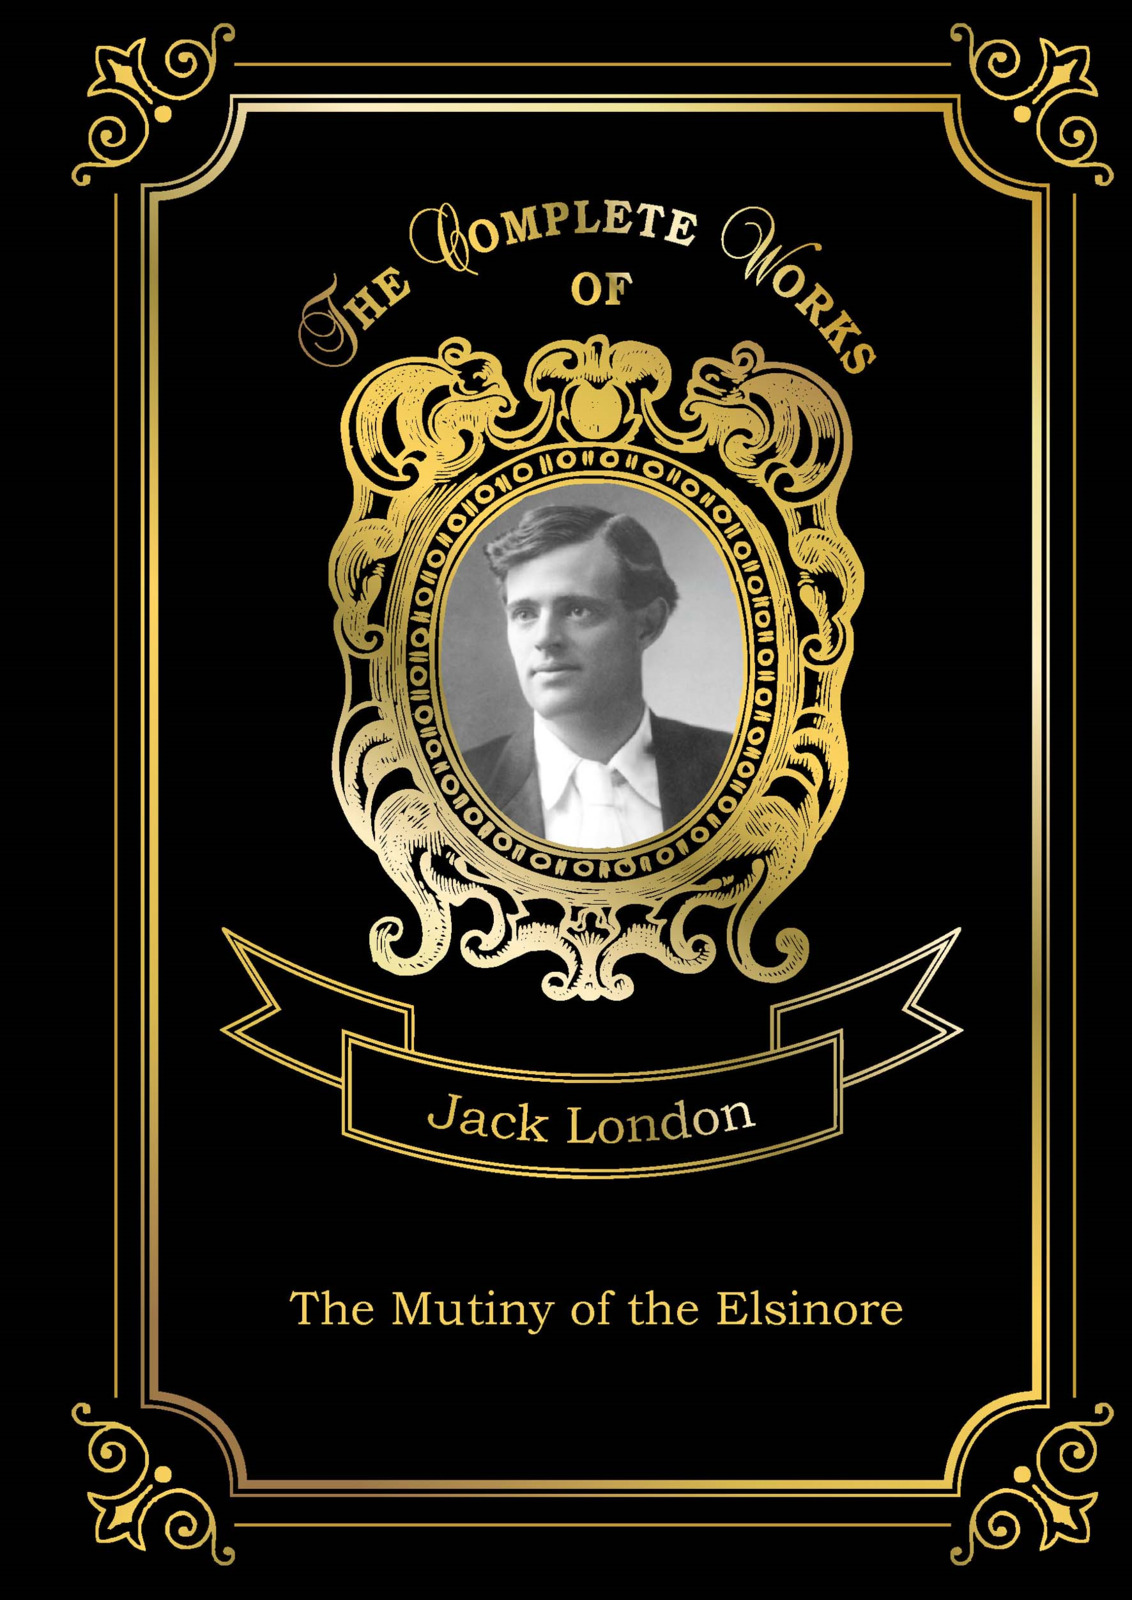 Jack London The Mutiny of the Elsinore christie a death on the nile